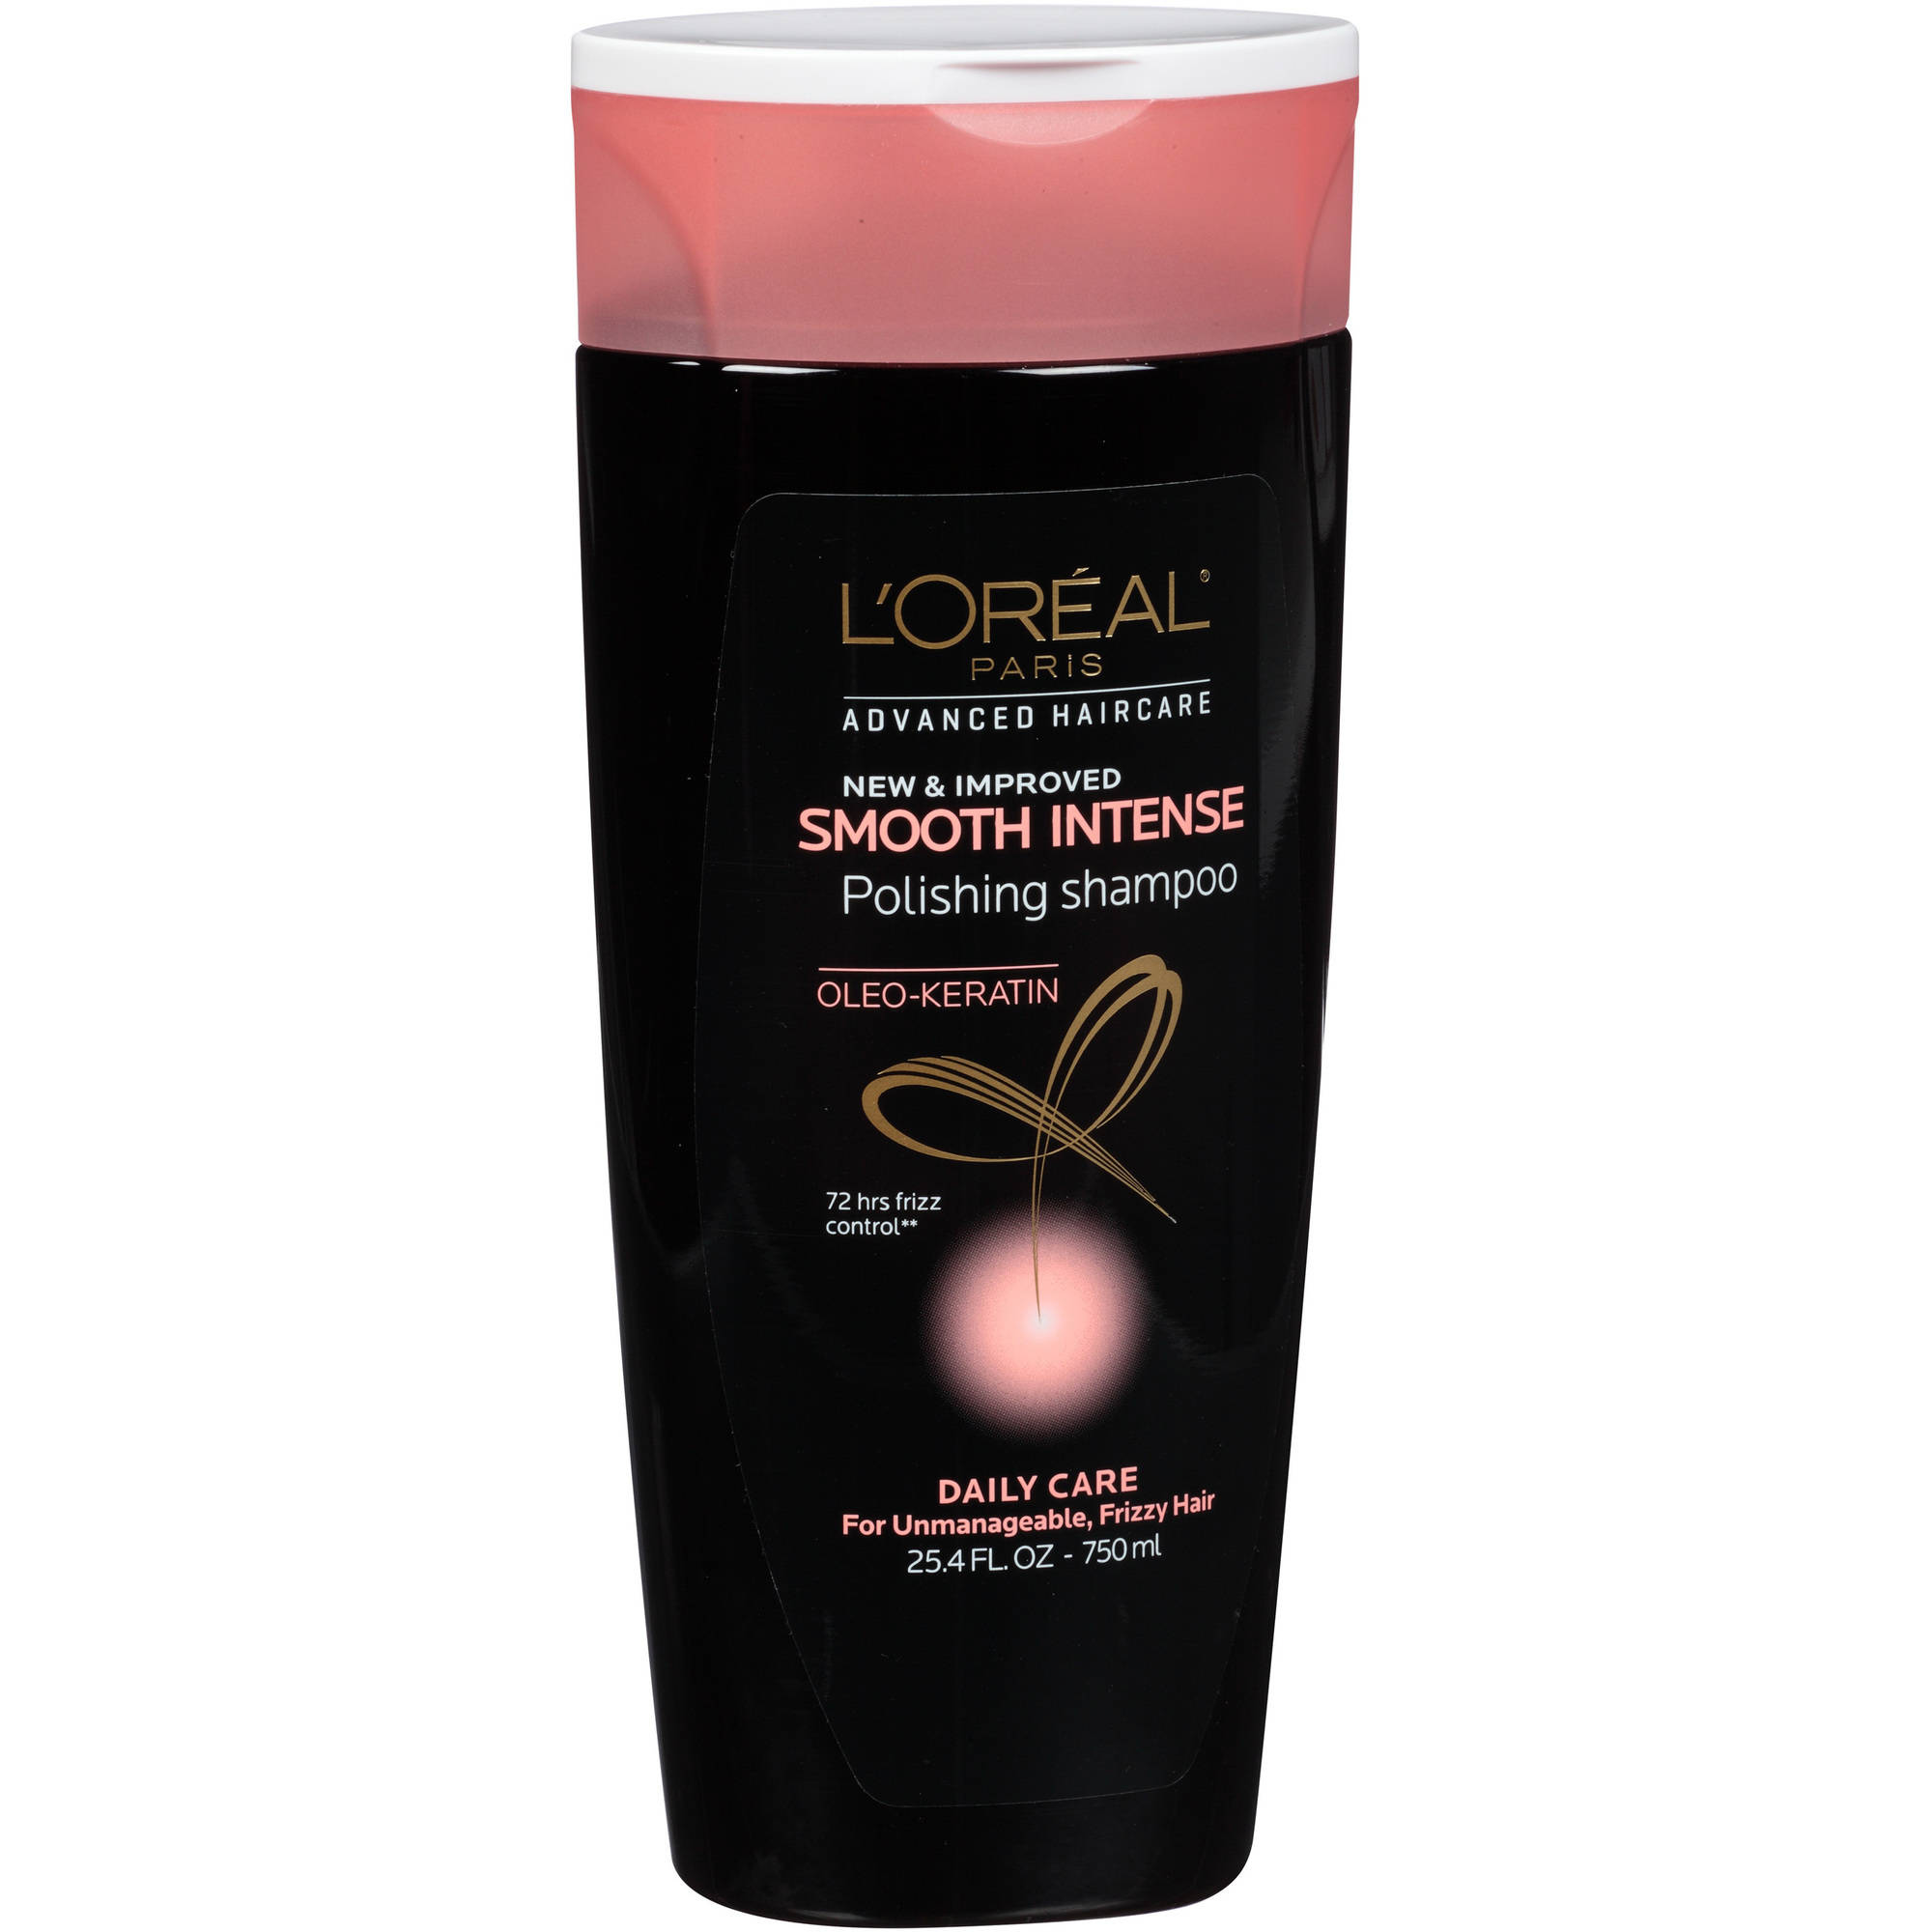 L'Oreal Paris Advanced Haircare Smooth Intense Polishing Shampoo 25.4 FL OZ